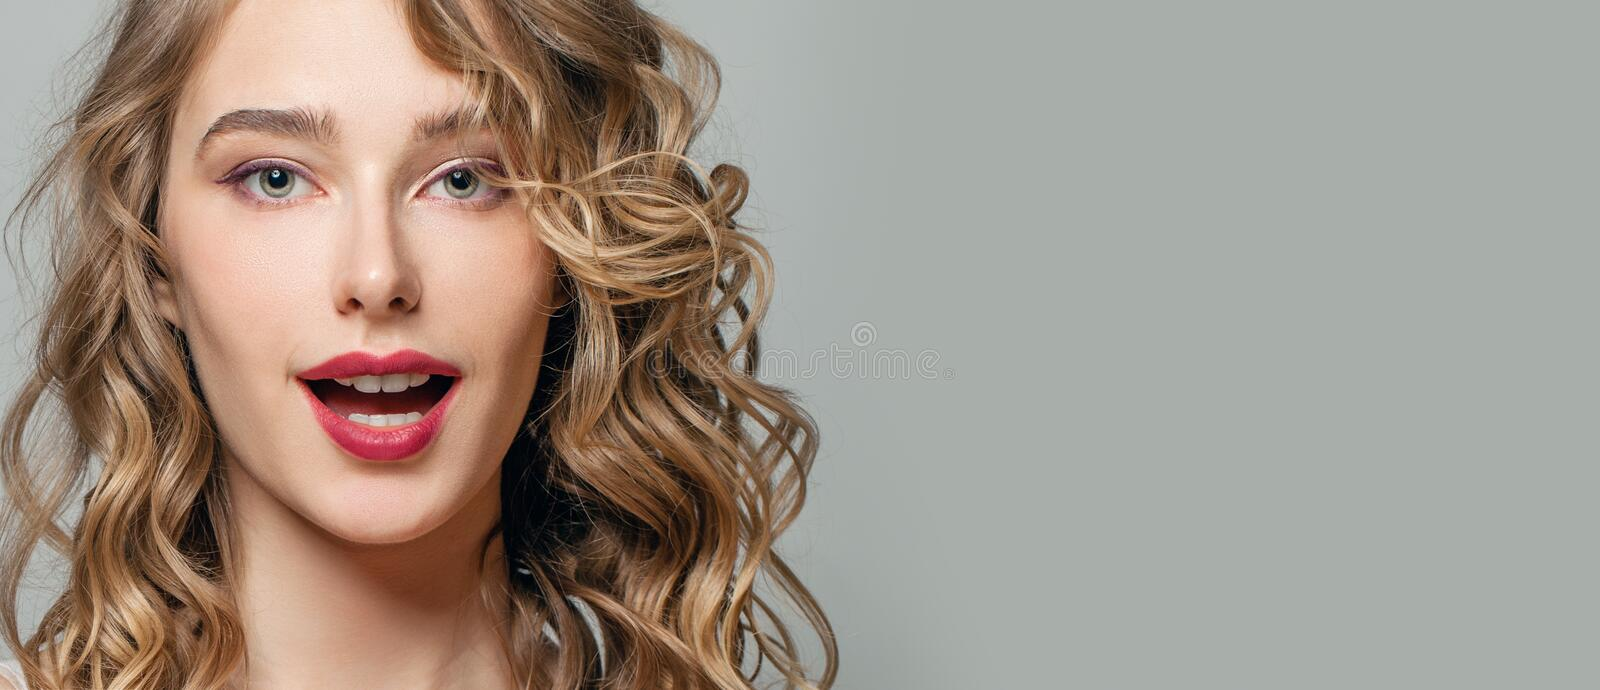 Surprised Woman Face Close Up Portrait On Gray Banner Background Stock Photo Image Of Girl Hair 178866518